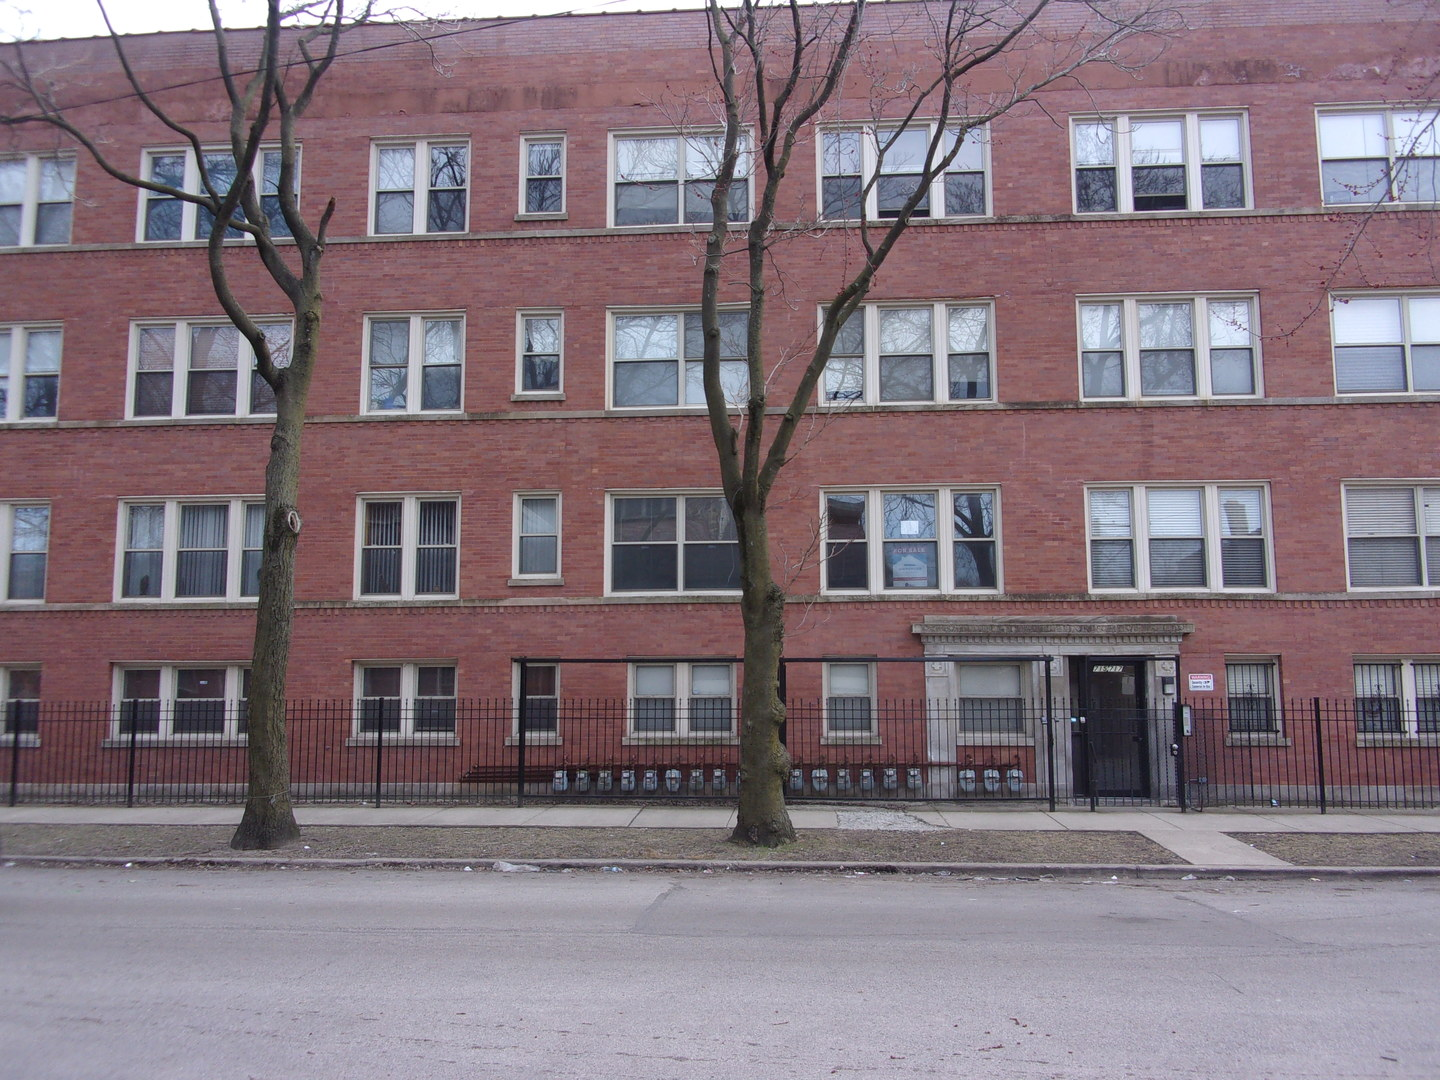 717 East 62nd 1, CHICAGO, Illinois, 60637